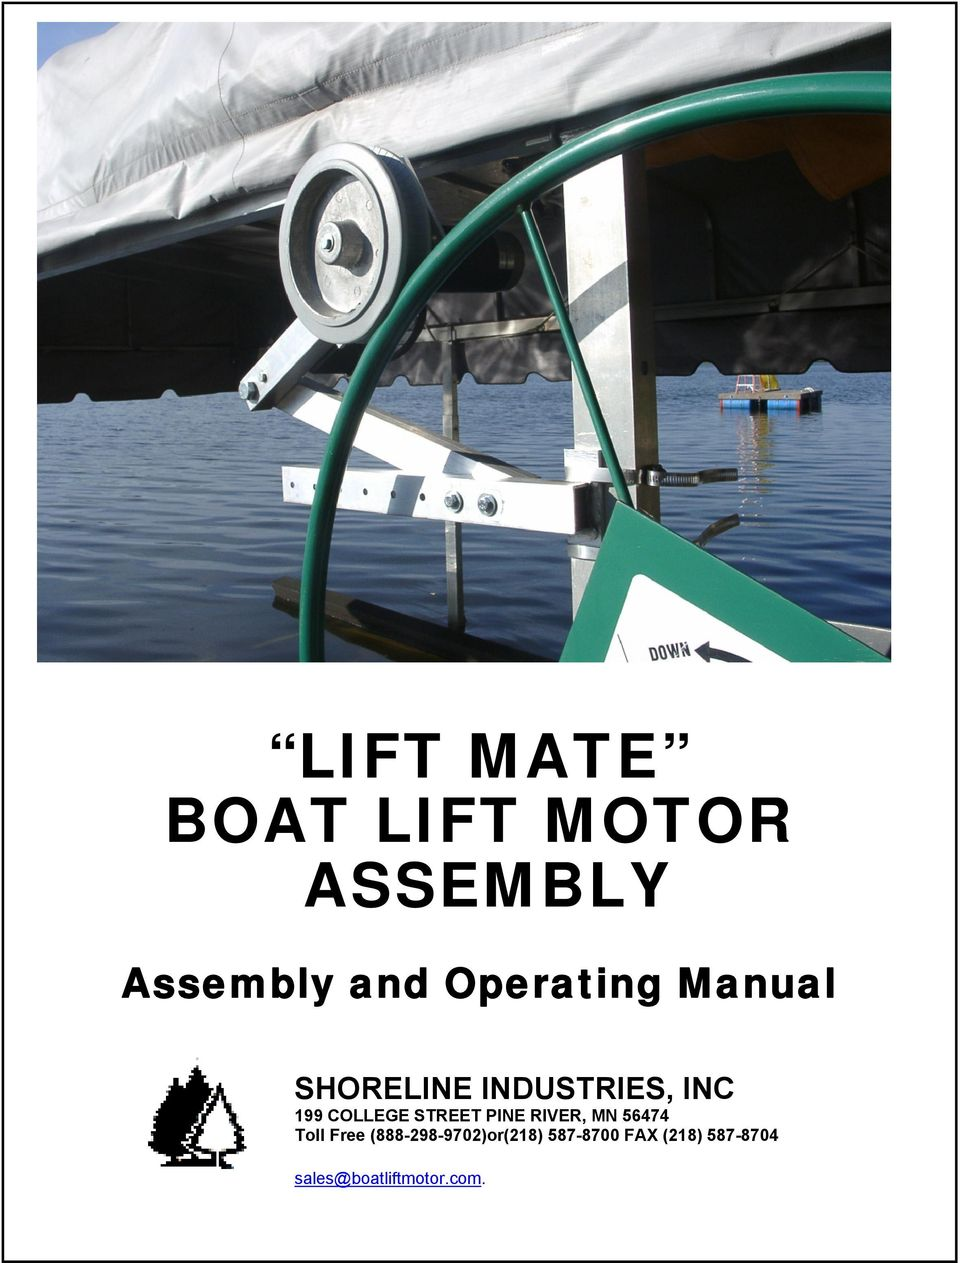 LIFT MATE BOAT LIFT MOTOR ASSEMBLY - PDF